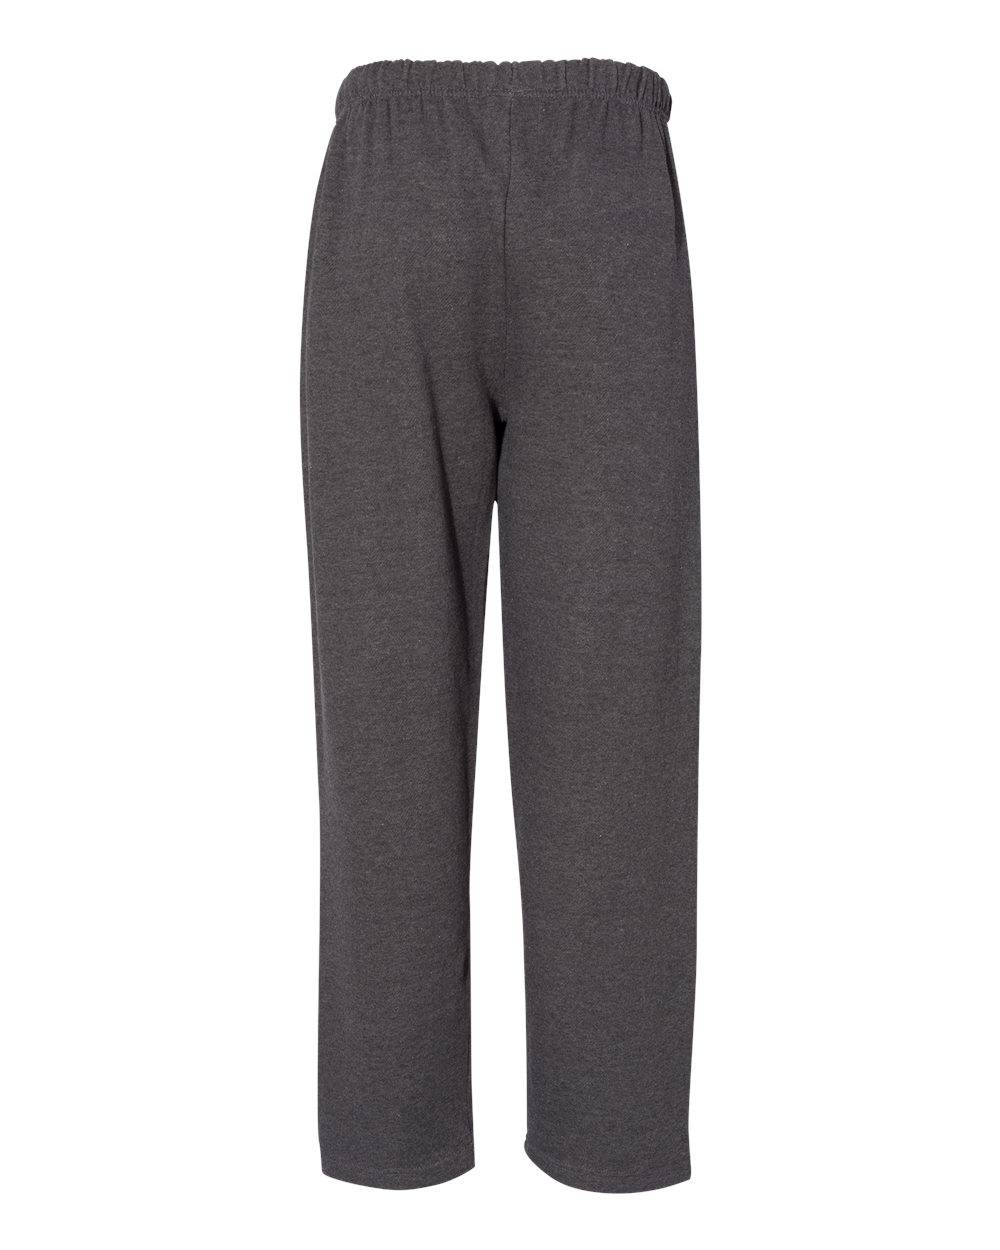 C2-Sport-Mens-Open-Bottom-Sweatpants-With-Pockets-5577-up-to-4XL thumbnail 10